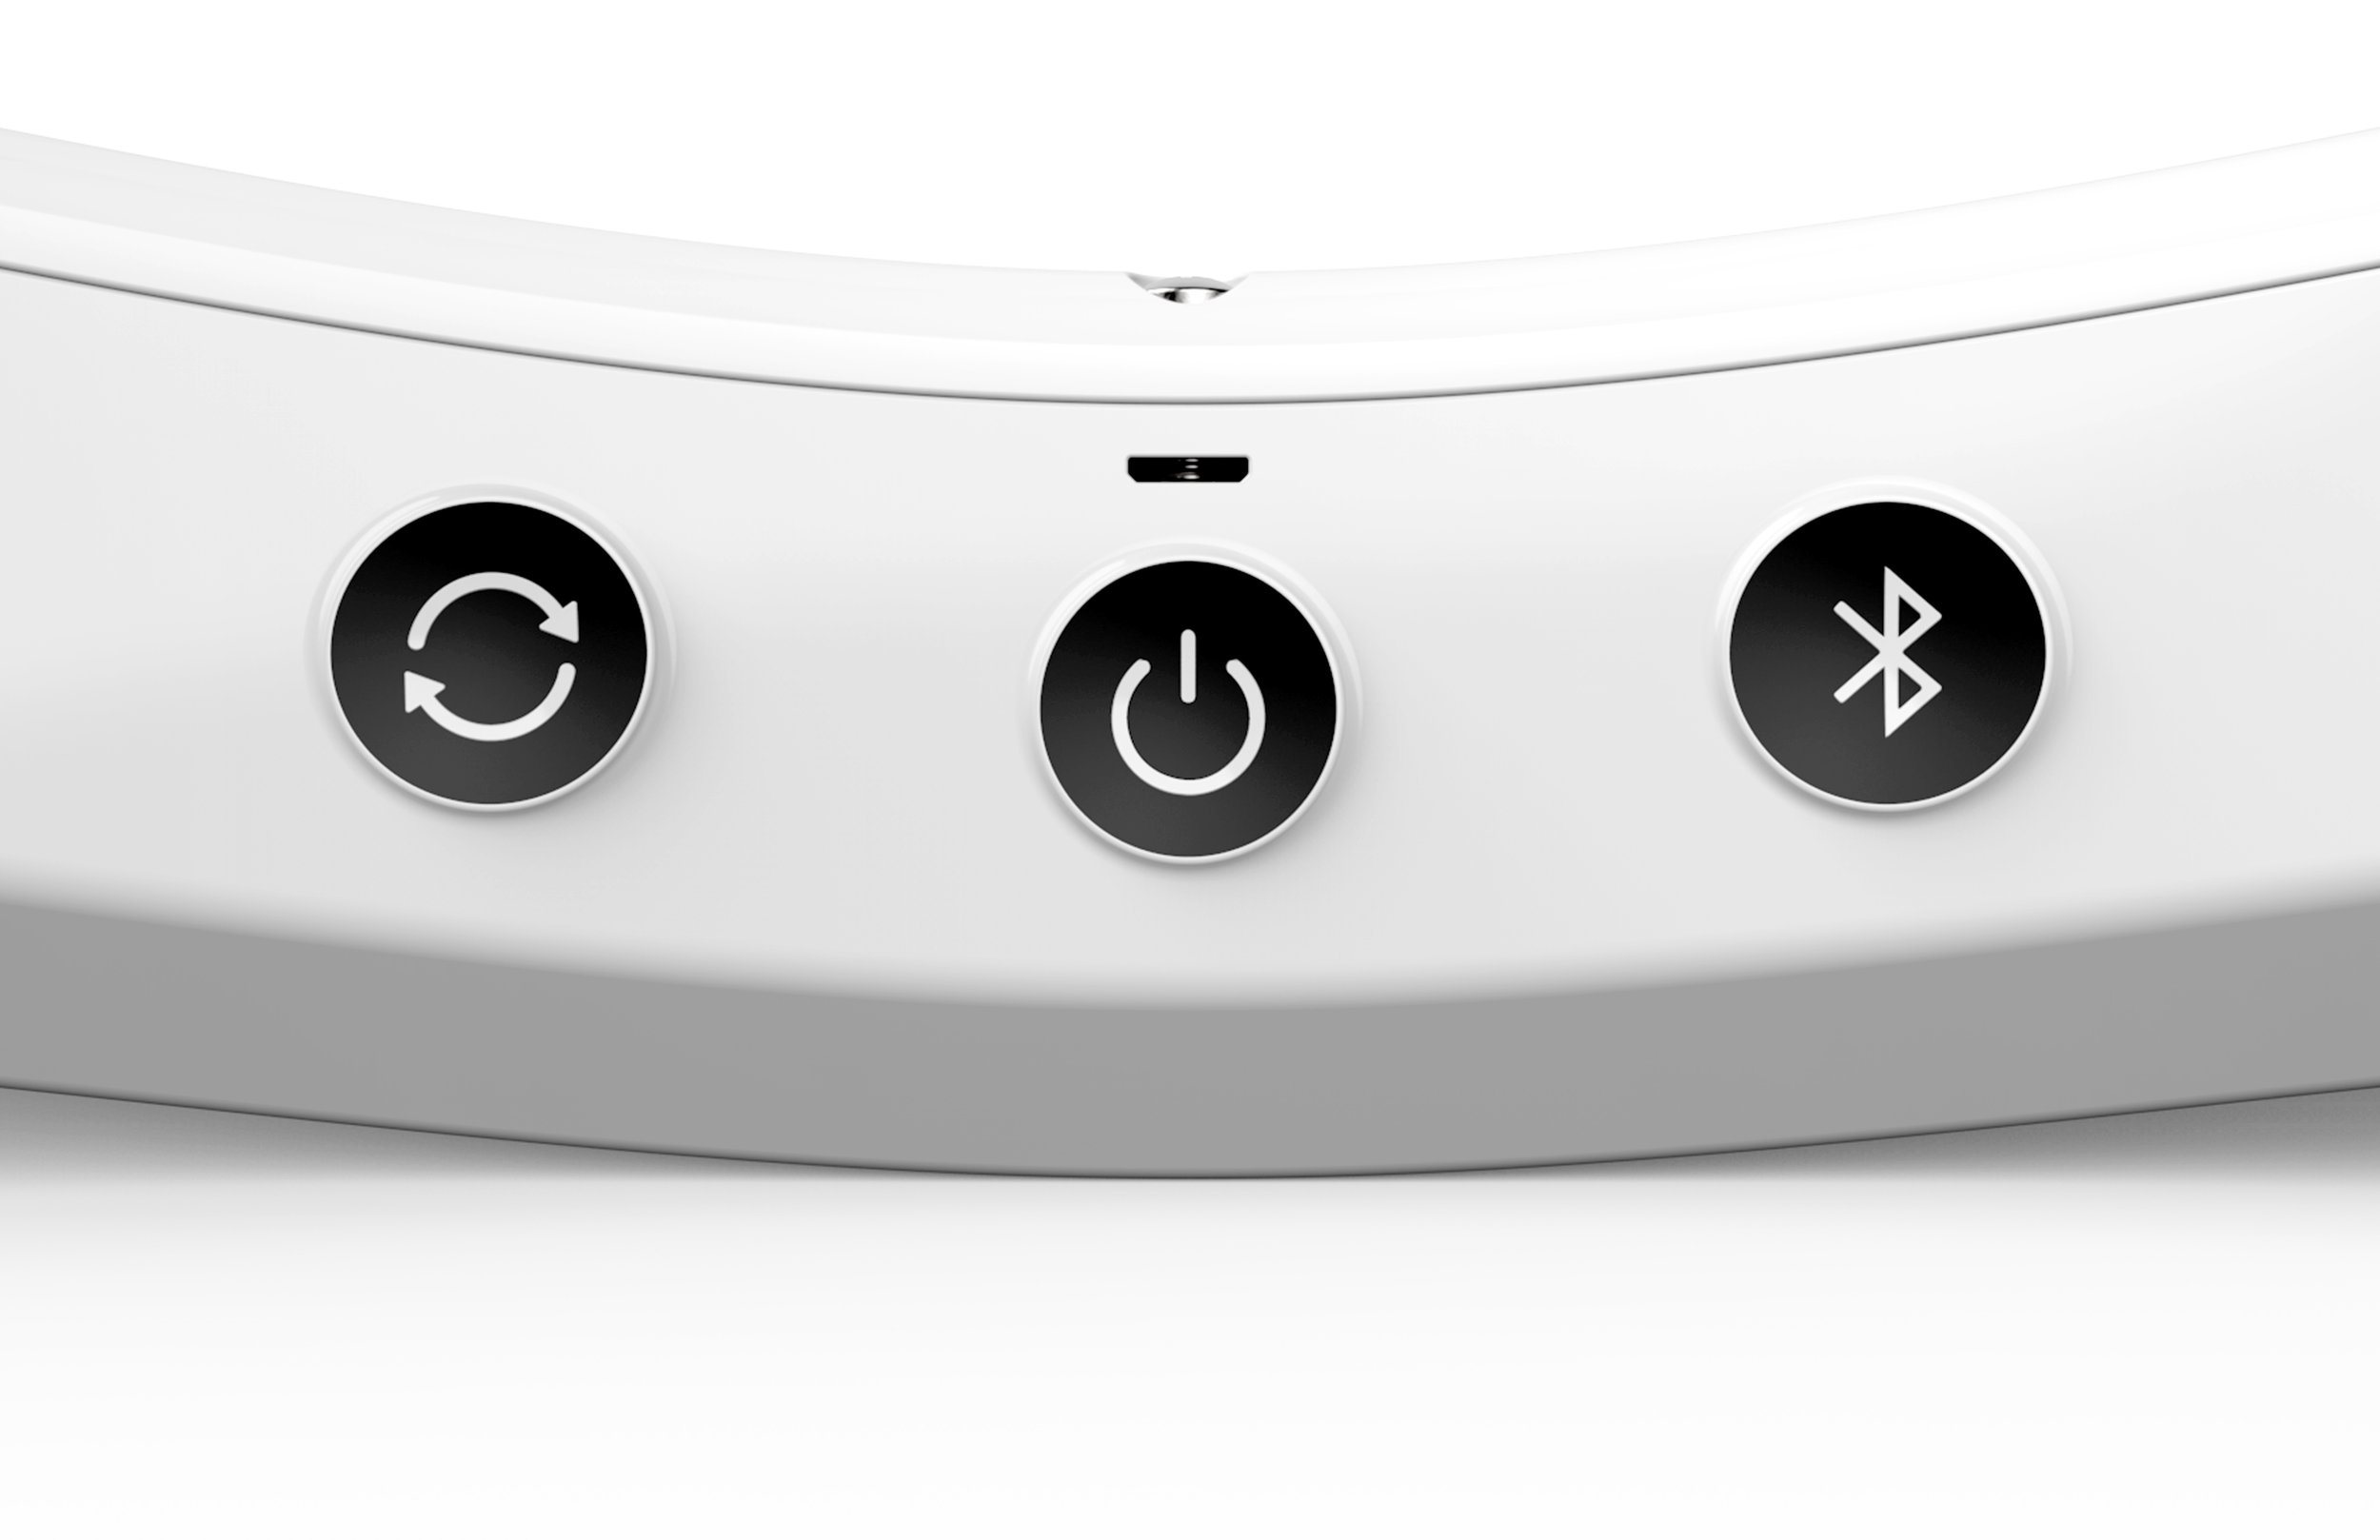 Sync button, power button, mini USB charging port, and bluetooth button.